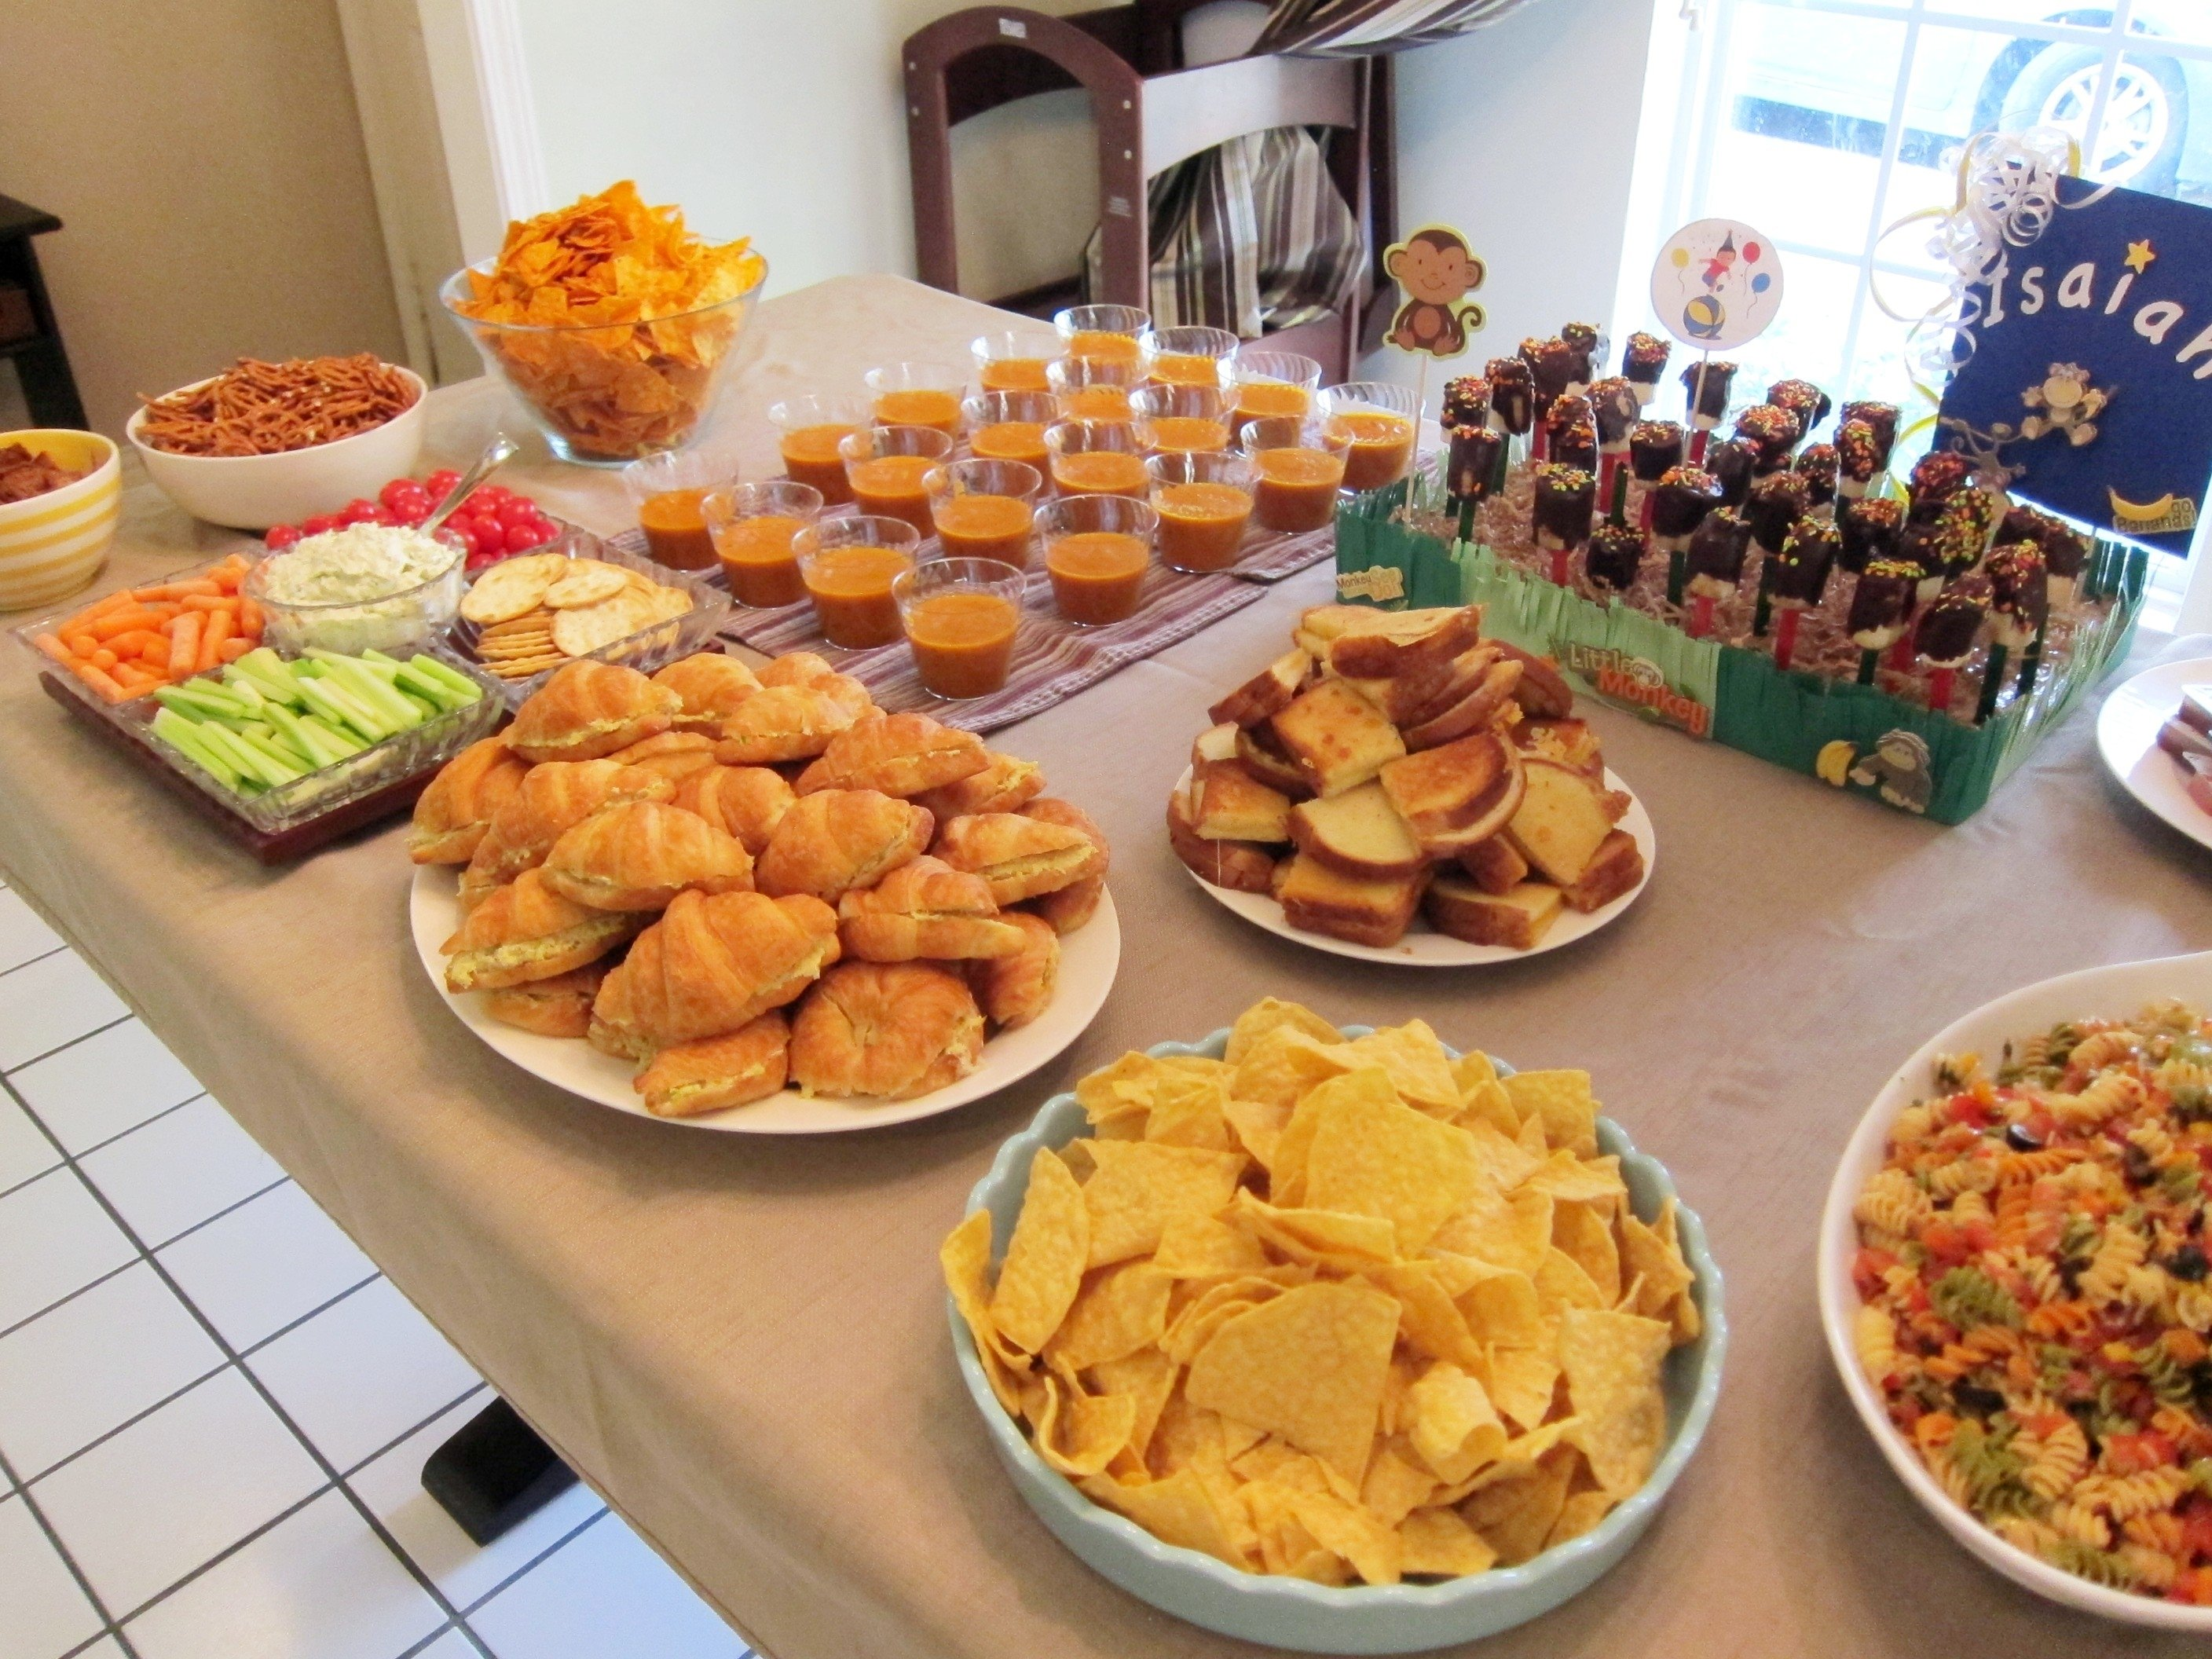 10 Ideal Food Ideas For First Birthday Party isaiahs curious george themed first birthday party oliepants 2 2021